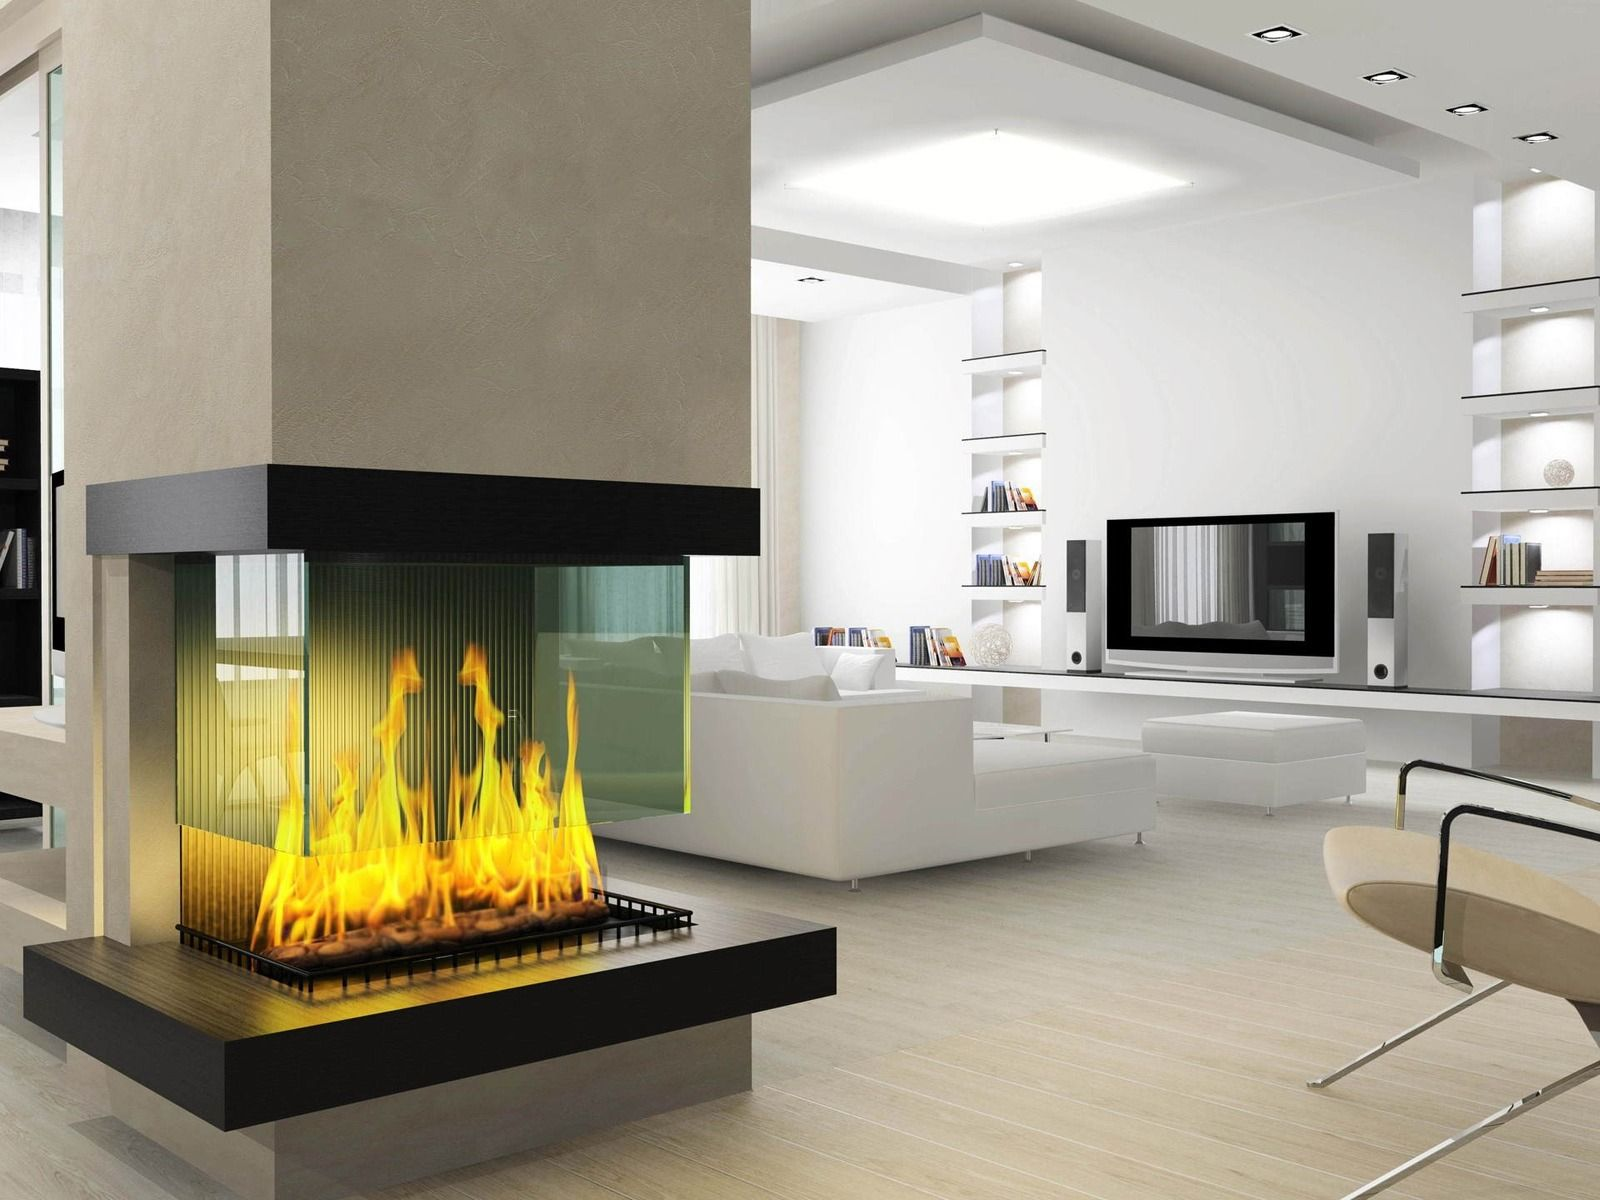 Extravagant fireplace steals the show stone fireplace for the spacious - Luxury And Modern Living Room With Fireplace Design Elegant And Minimalist Living Room With Fireplace With Unique Design Beautiful And Rom